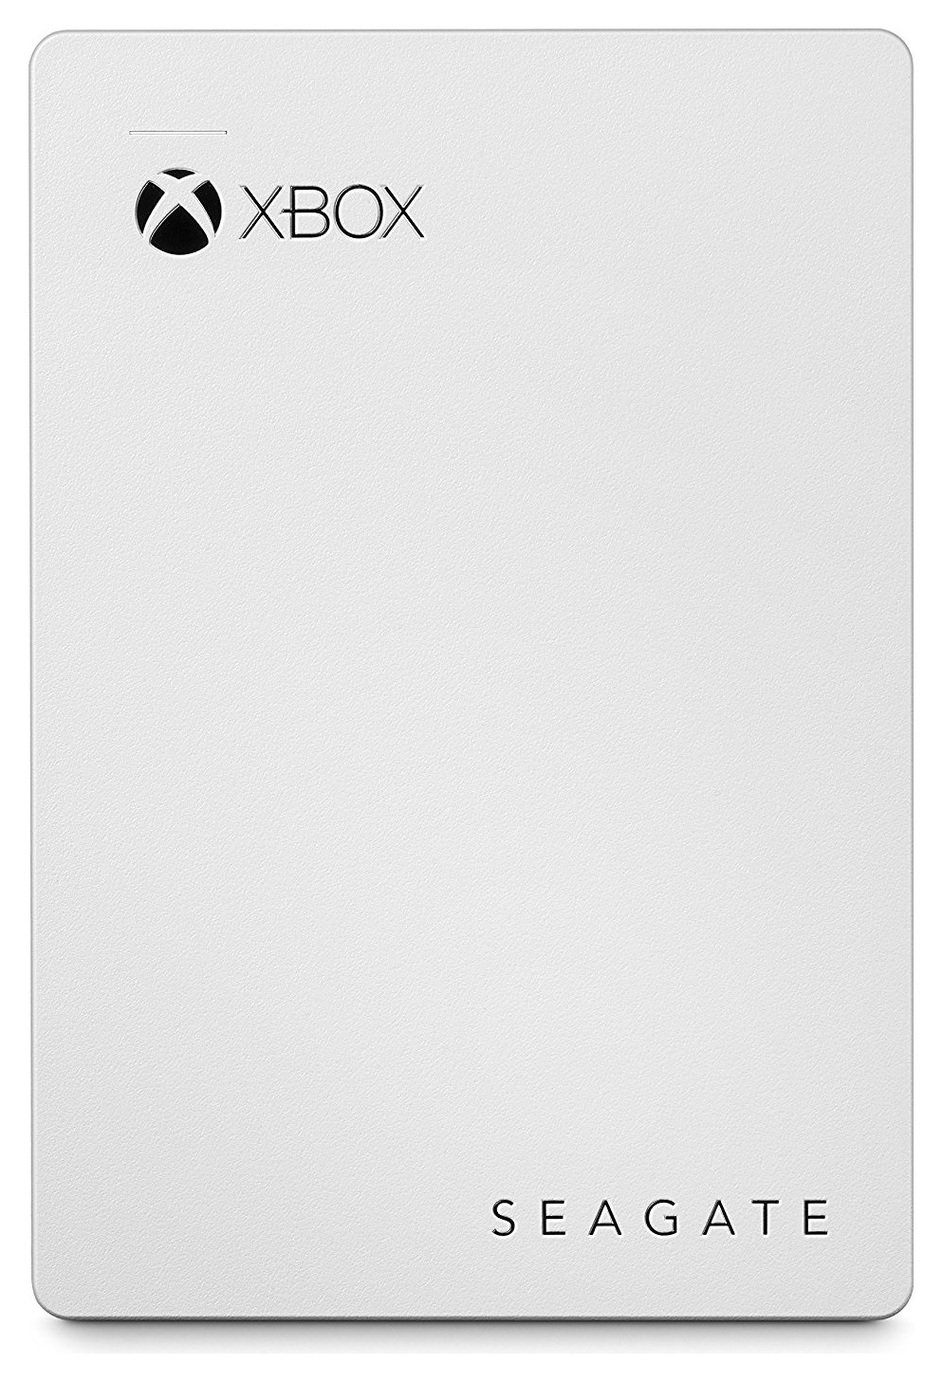 Seagate 2TB Xbox Gaming Hard Drive & GamePass